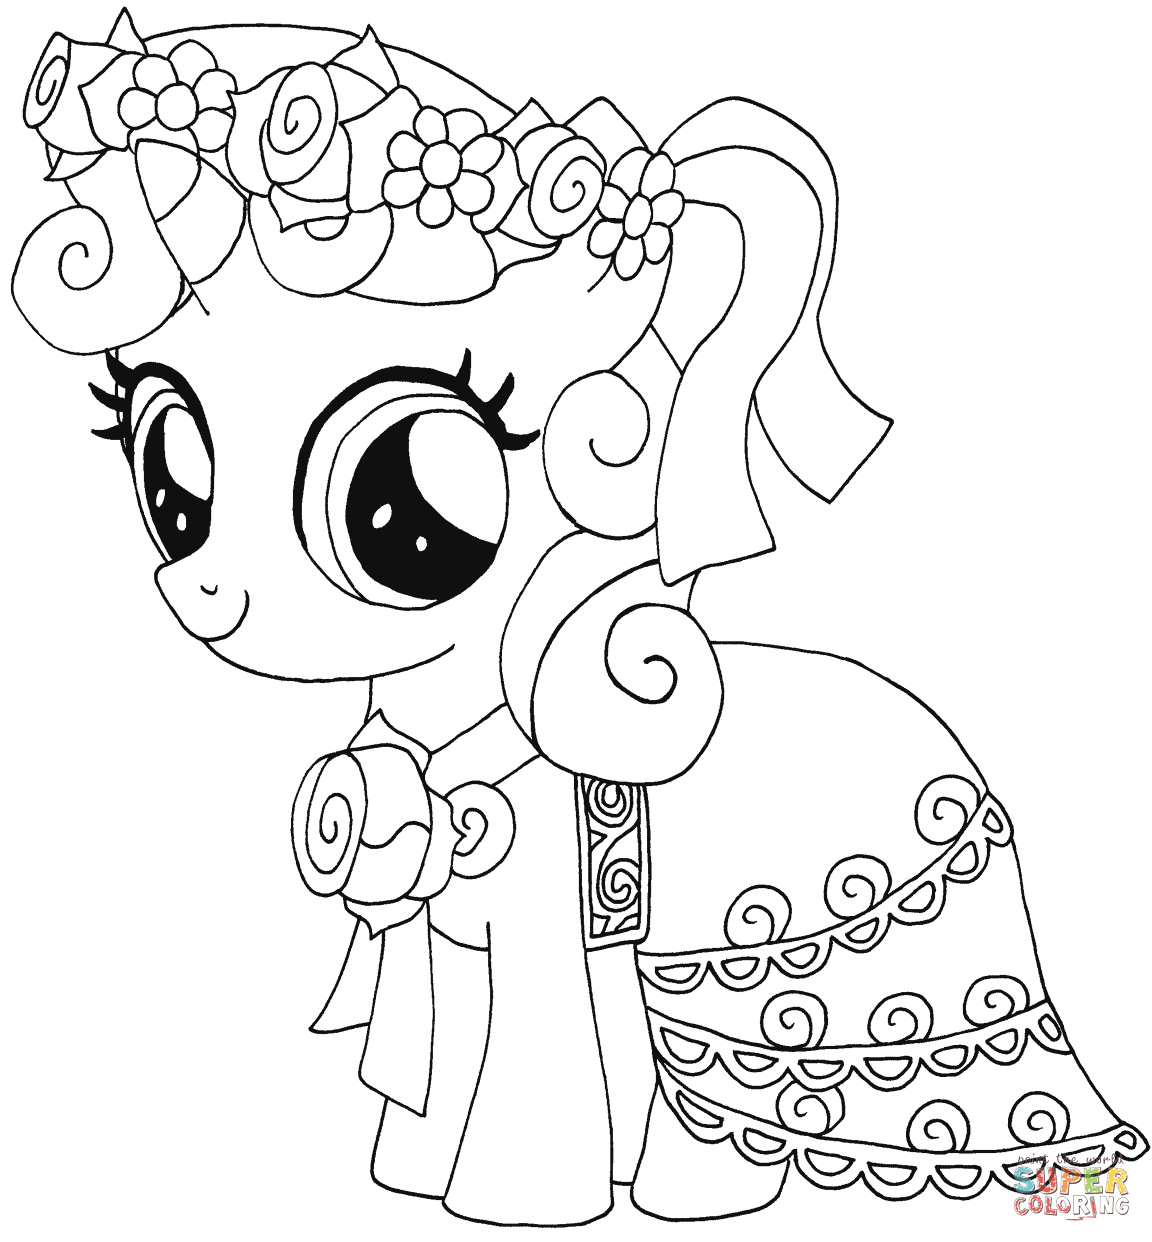 Coloring Pages My Little Pony Coloring Pages Boyama Sayfalari Resim Lol